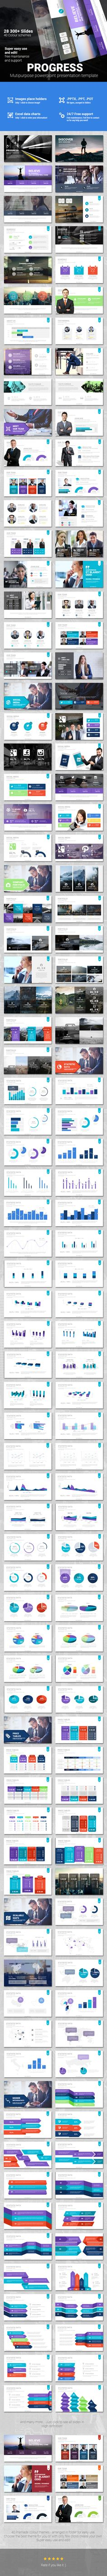 Buy Progress Powerpoint Presentation Template by CreativeSolutionsDesign on GraphicRiver. Progress is a professional powerpoint presentation with 40 amazing color schemes. Features: fully editable, a lot of . Business Powerpoint Templates, Powerpoint Presentation Templates, Keynote Template, Powerpoint Presentations, Professional Powerpoint Presentation, Presentation Slides, Table Template, Graphic Design Templates, Color Schemes